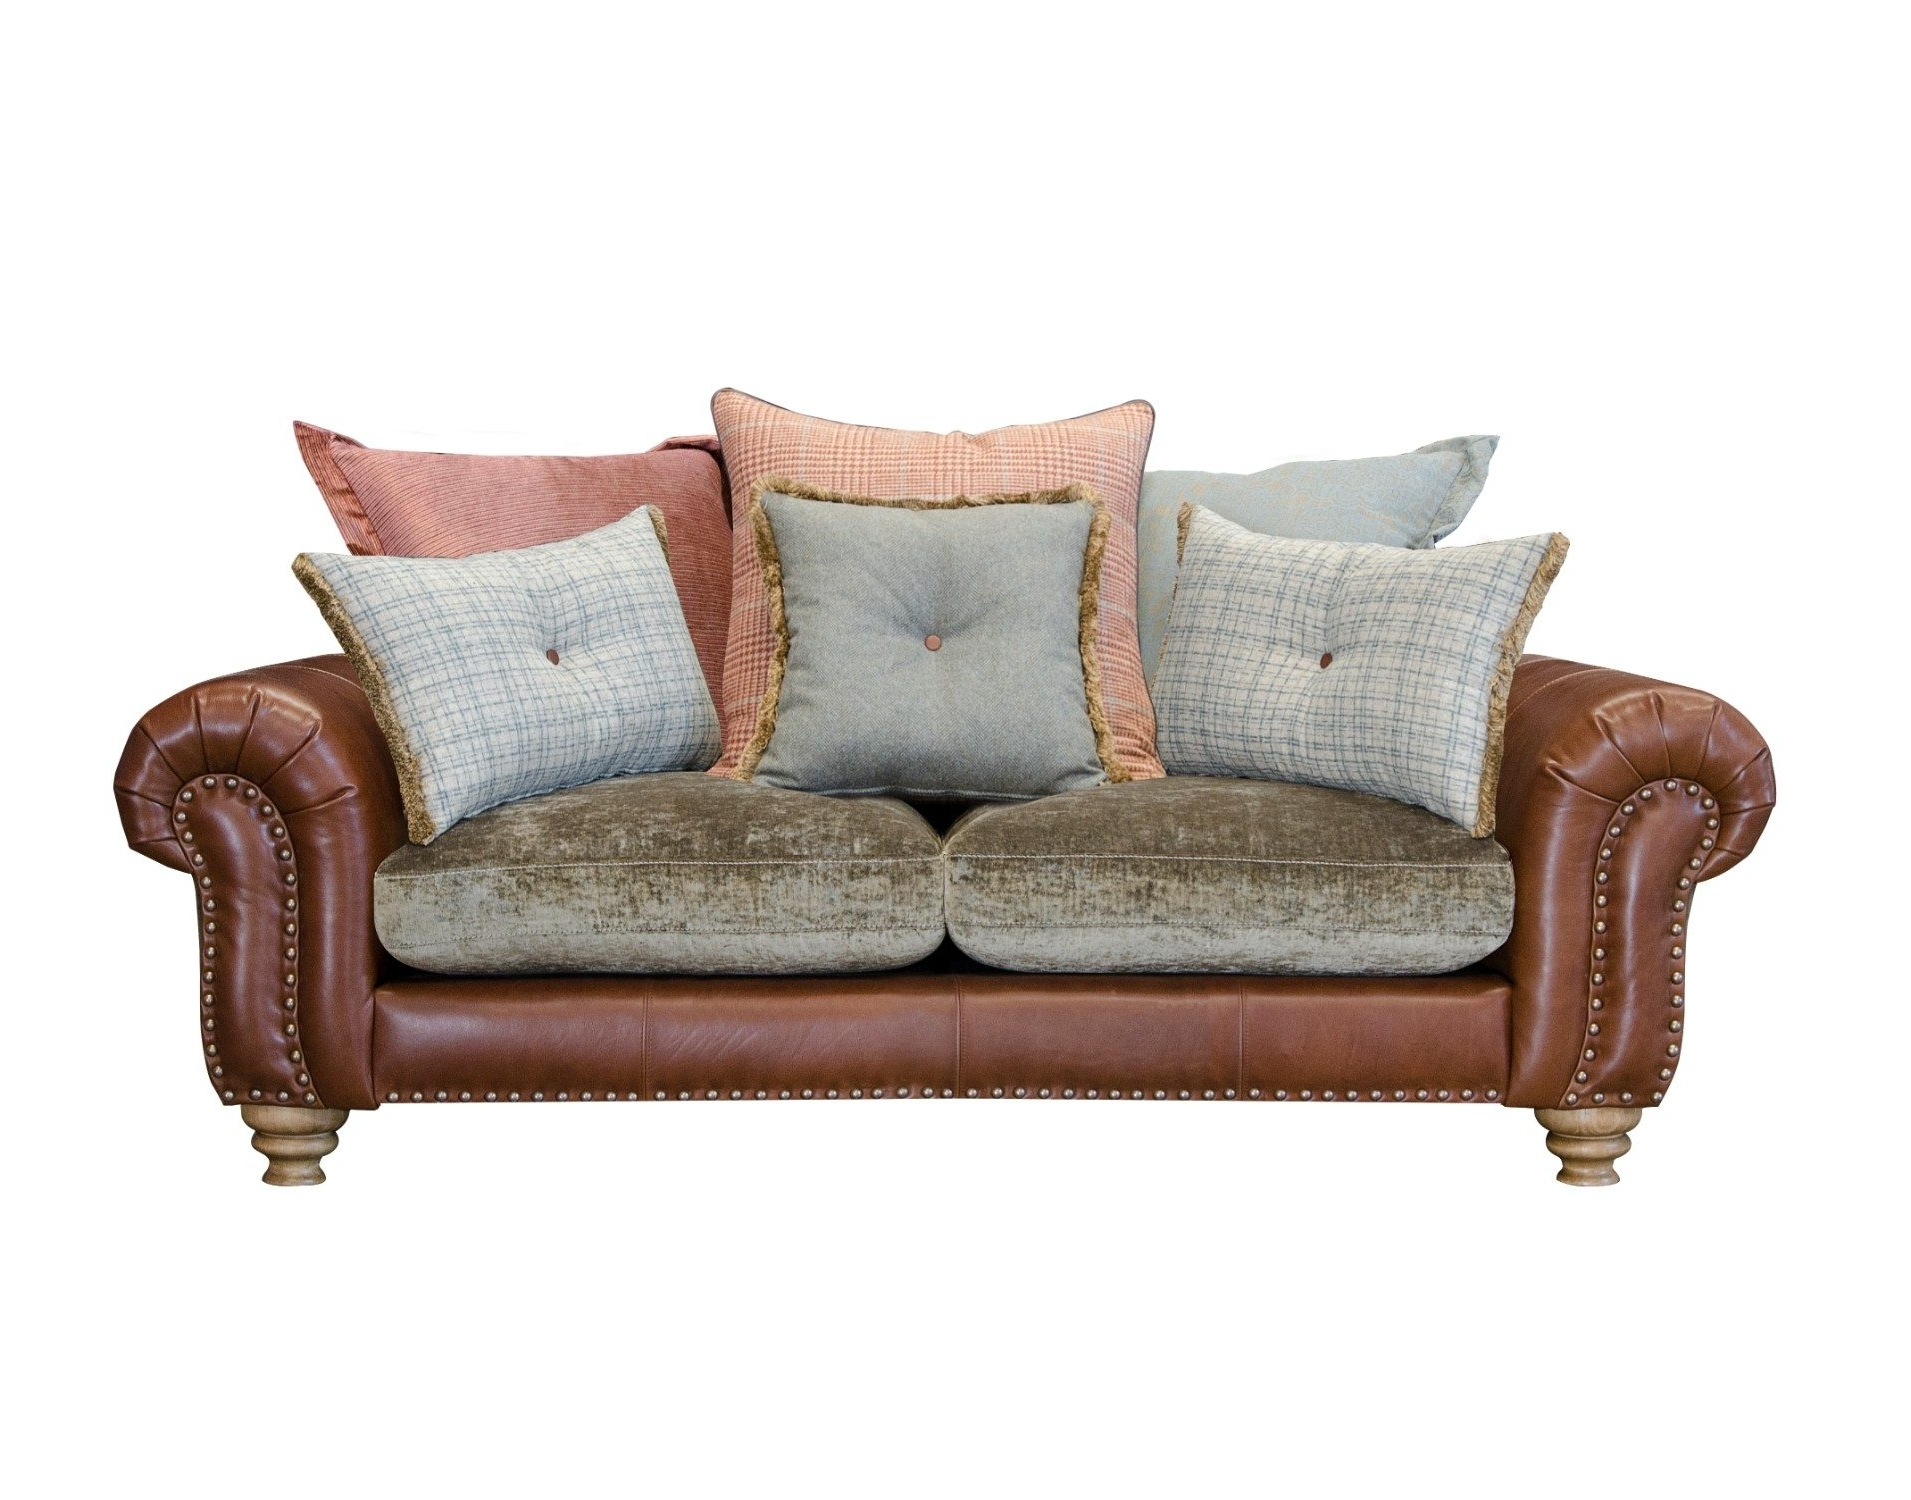 2 Seater Sofas In Cornwall & Devon At Furniture World – Furniture Within Most Popular Single Seat Sofa Chairs (View 17 of 20)